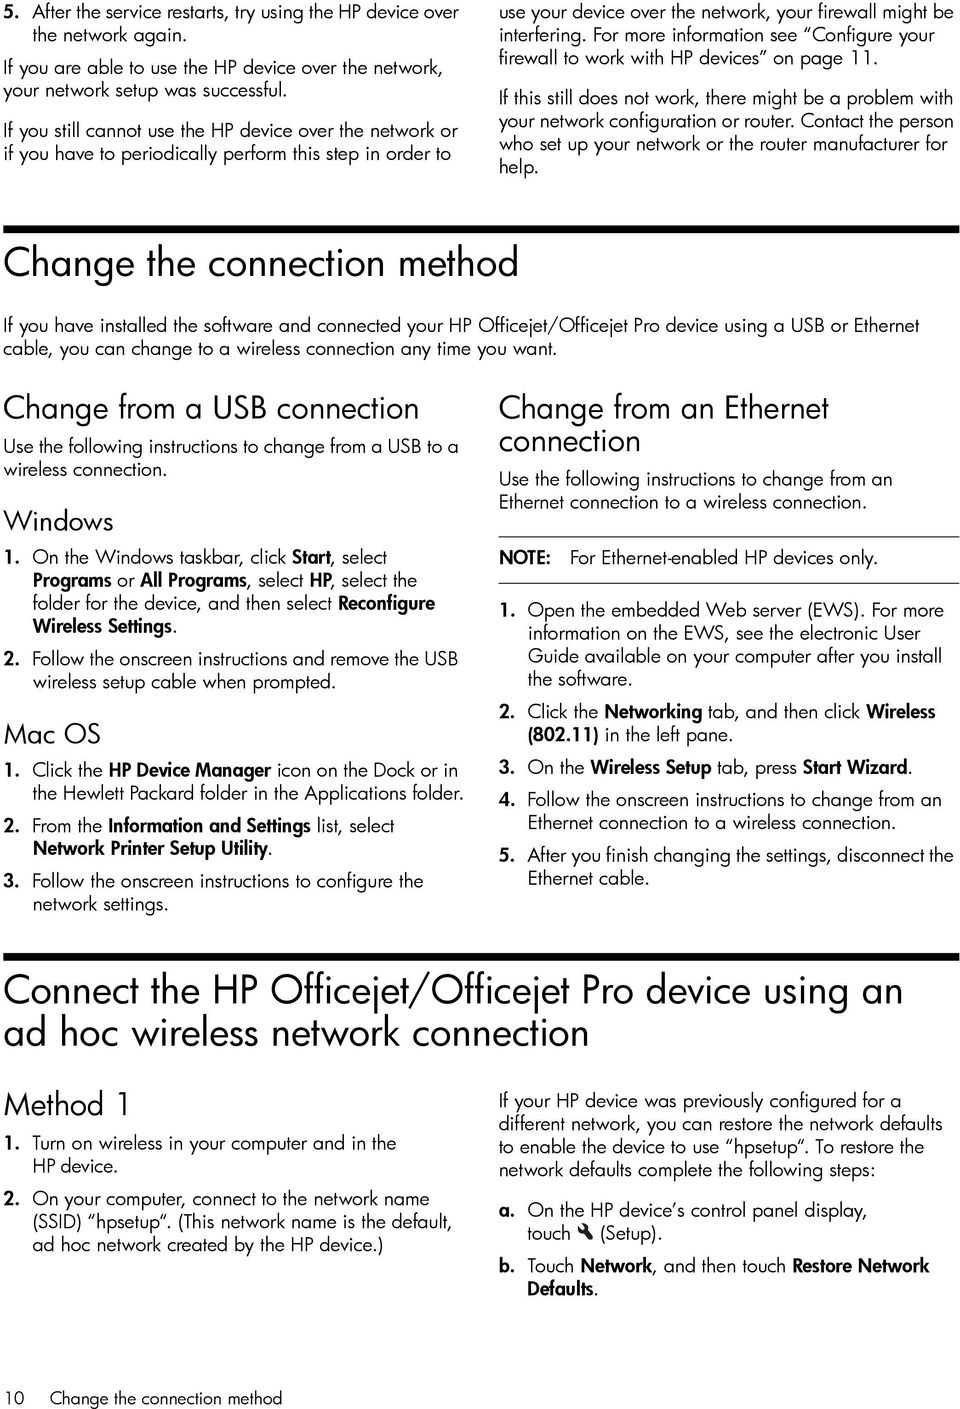 For more information see Configure your firewall to work with HP devices on page 11. If this still does not work, there might be a problem with your network configuration or router.